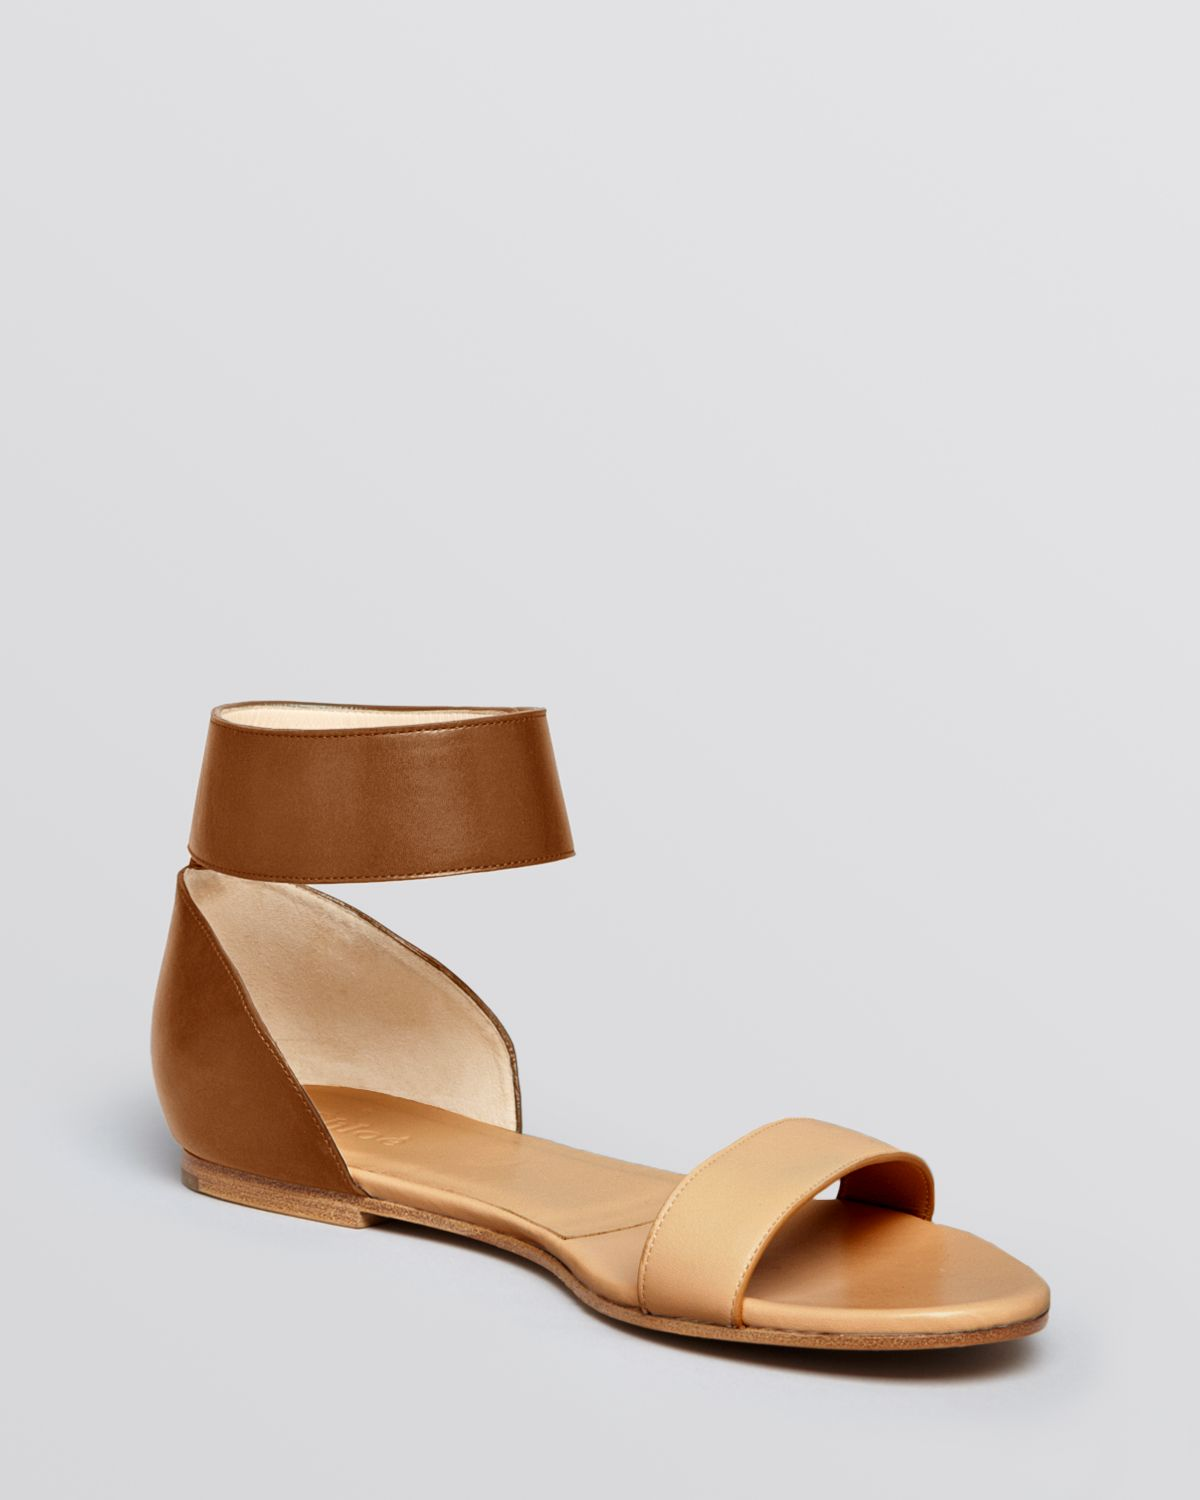 6726e255ca6c Lyst - Chloé Flat Sandals Taffy Ankle Strap in Brown